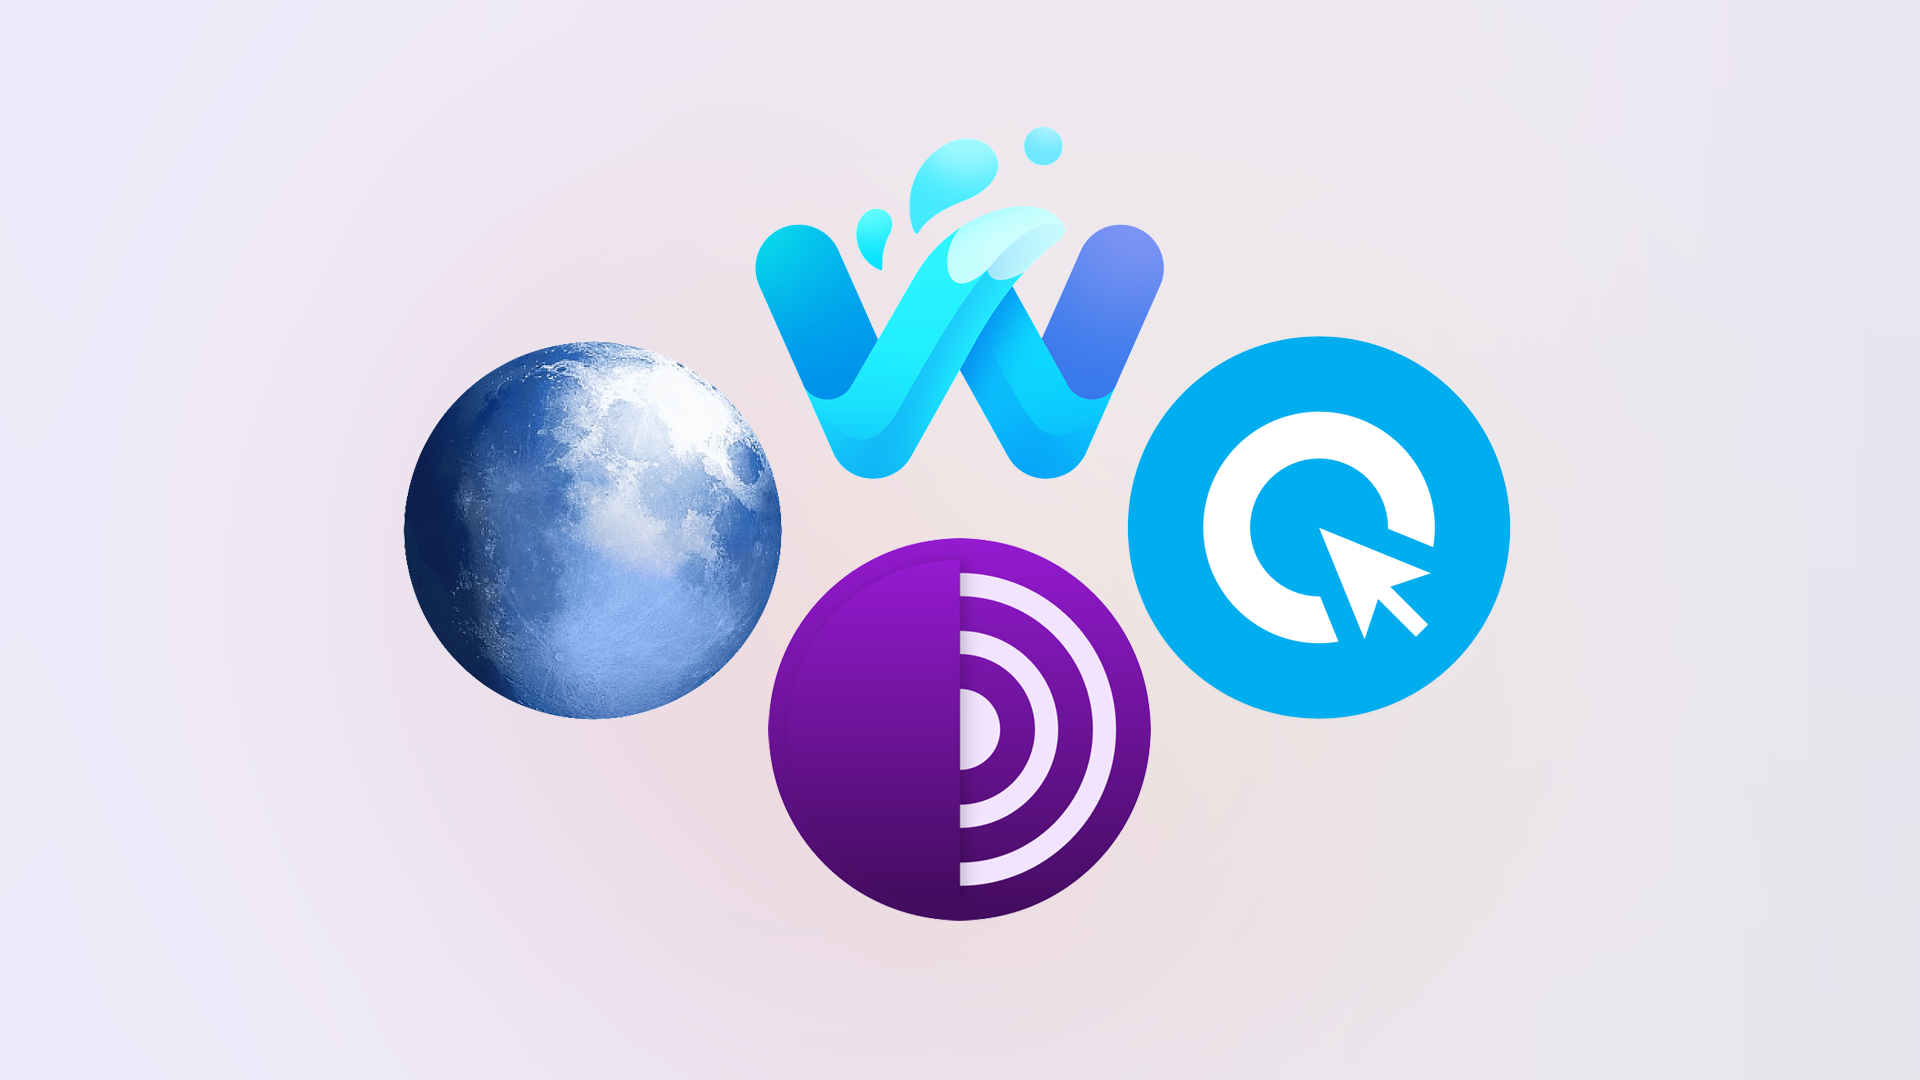 Waterfox, Cliqz, Tor Browser, and Pale Moon logos